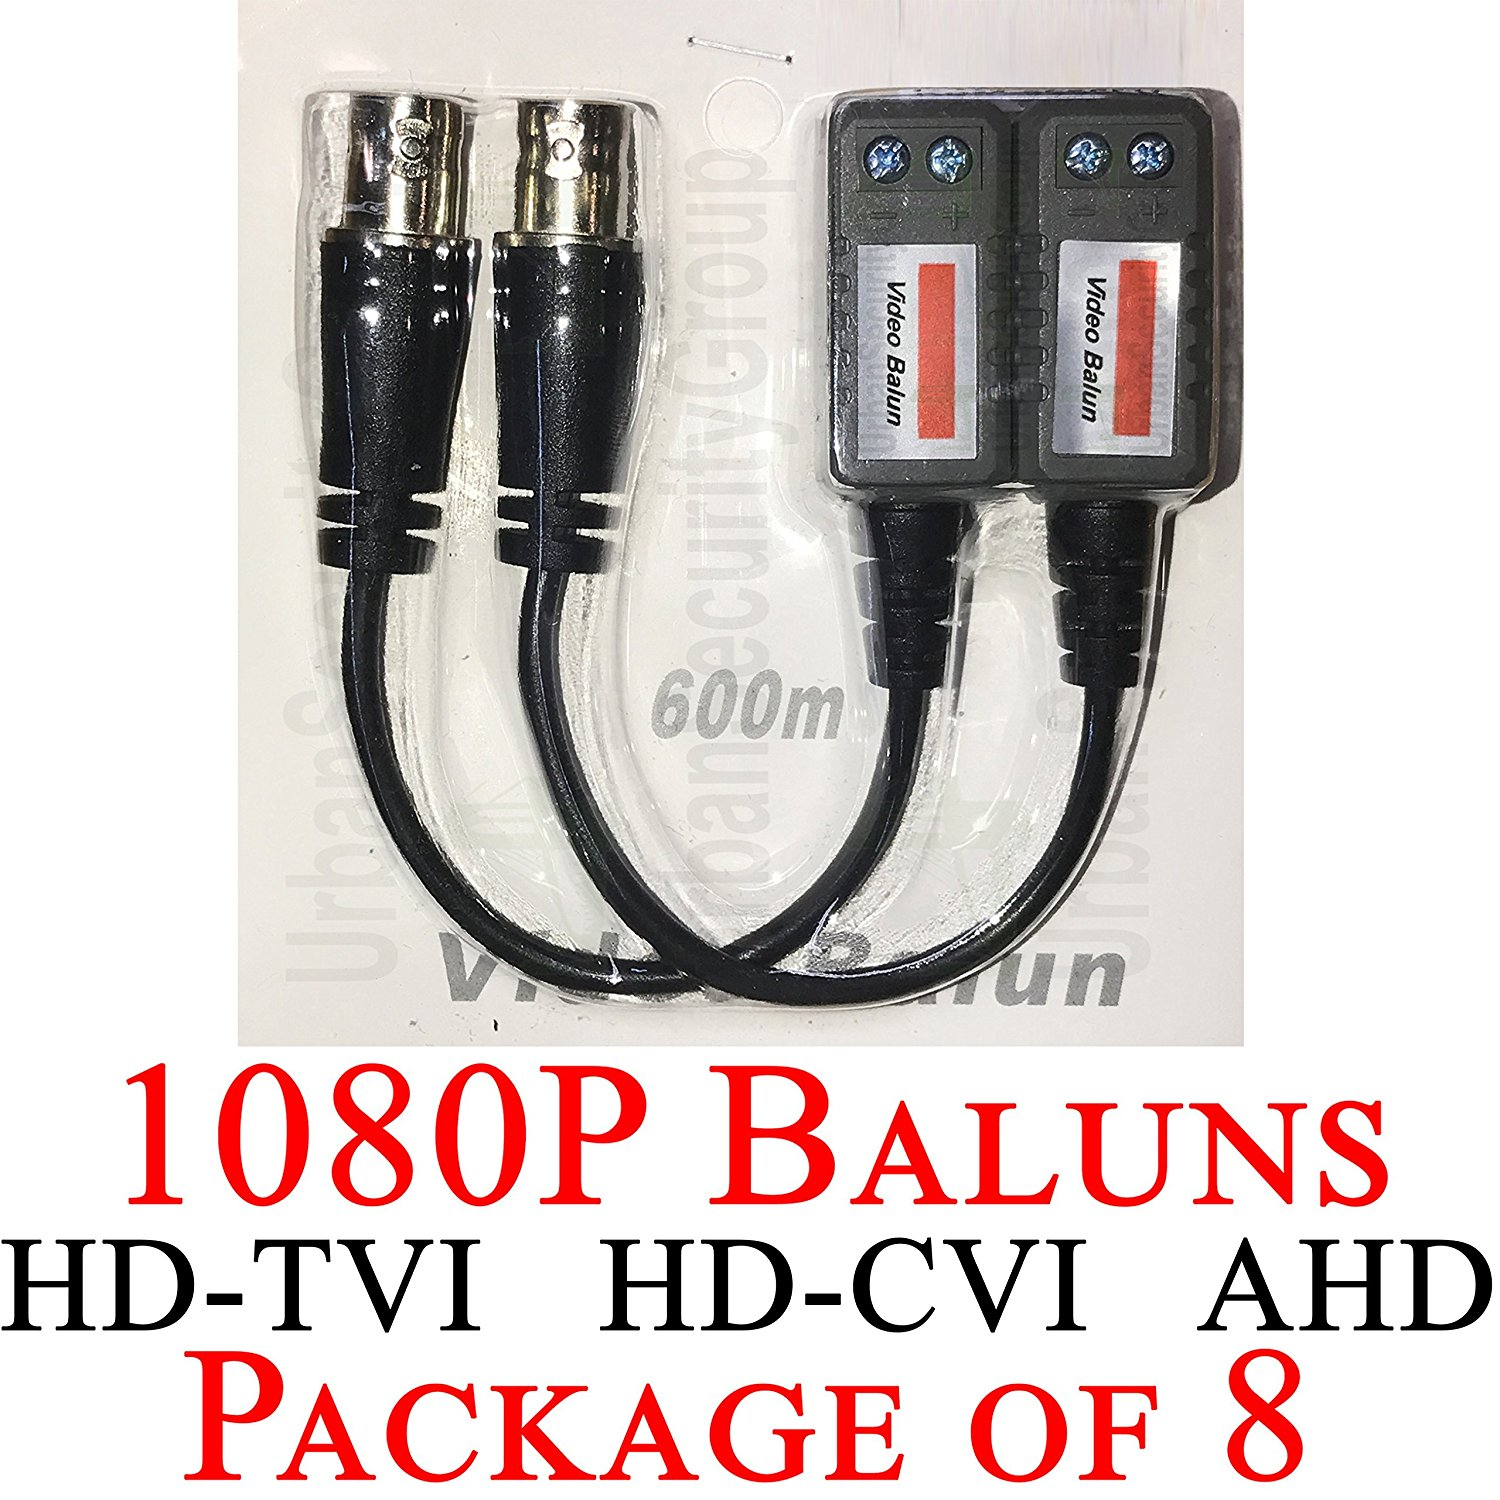 USG Premium Pack of EIGHT (8x) HD 1080P CCTV Balun Transceiver : BNC + 2-Wire Screw Terminal : Video Over UTP Network Cable : ACTIVE : Transmit 1080p Video Signal For HD-TVI, HD-CVI, AHD Equipment